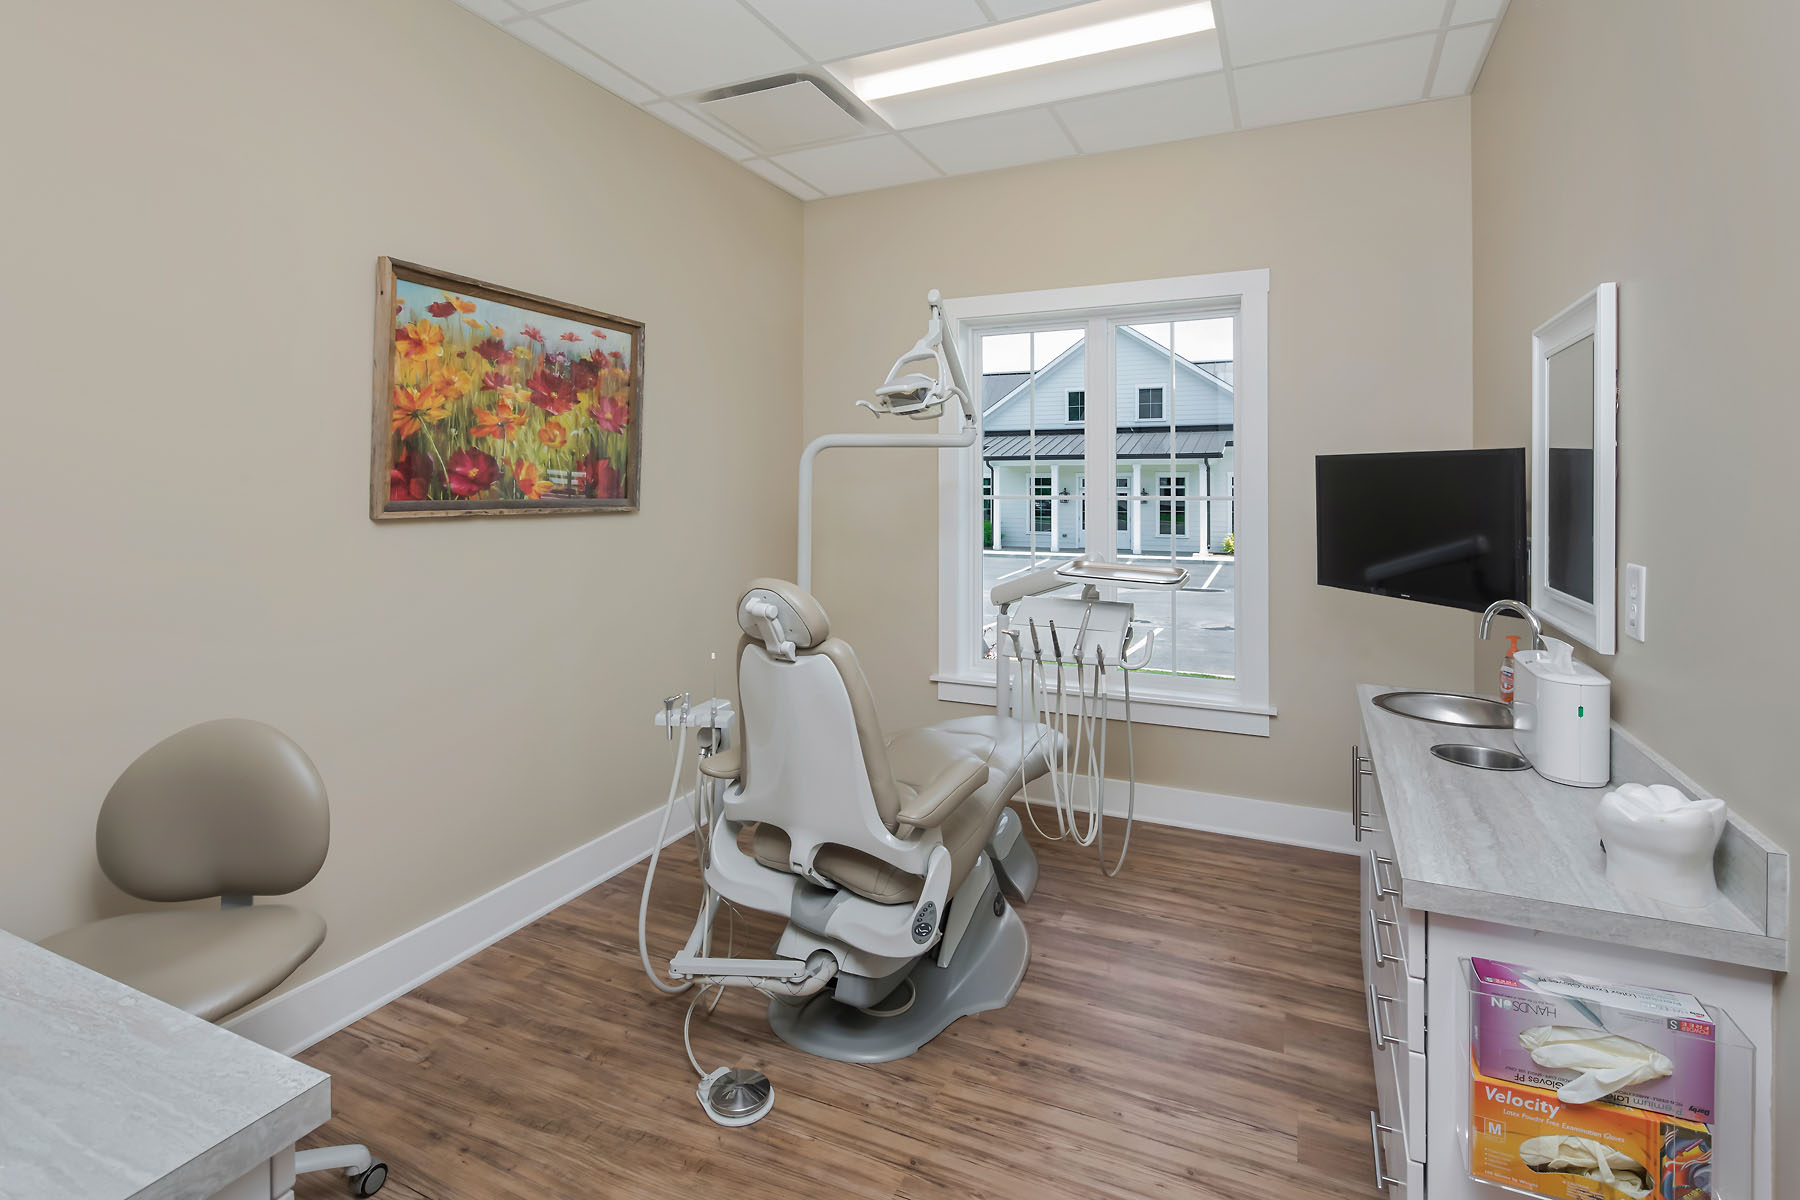 MyersDental_017_LR